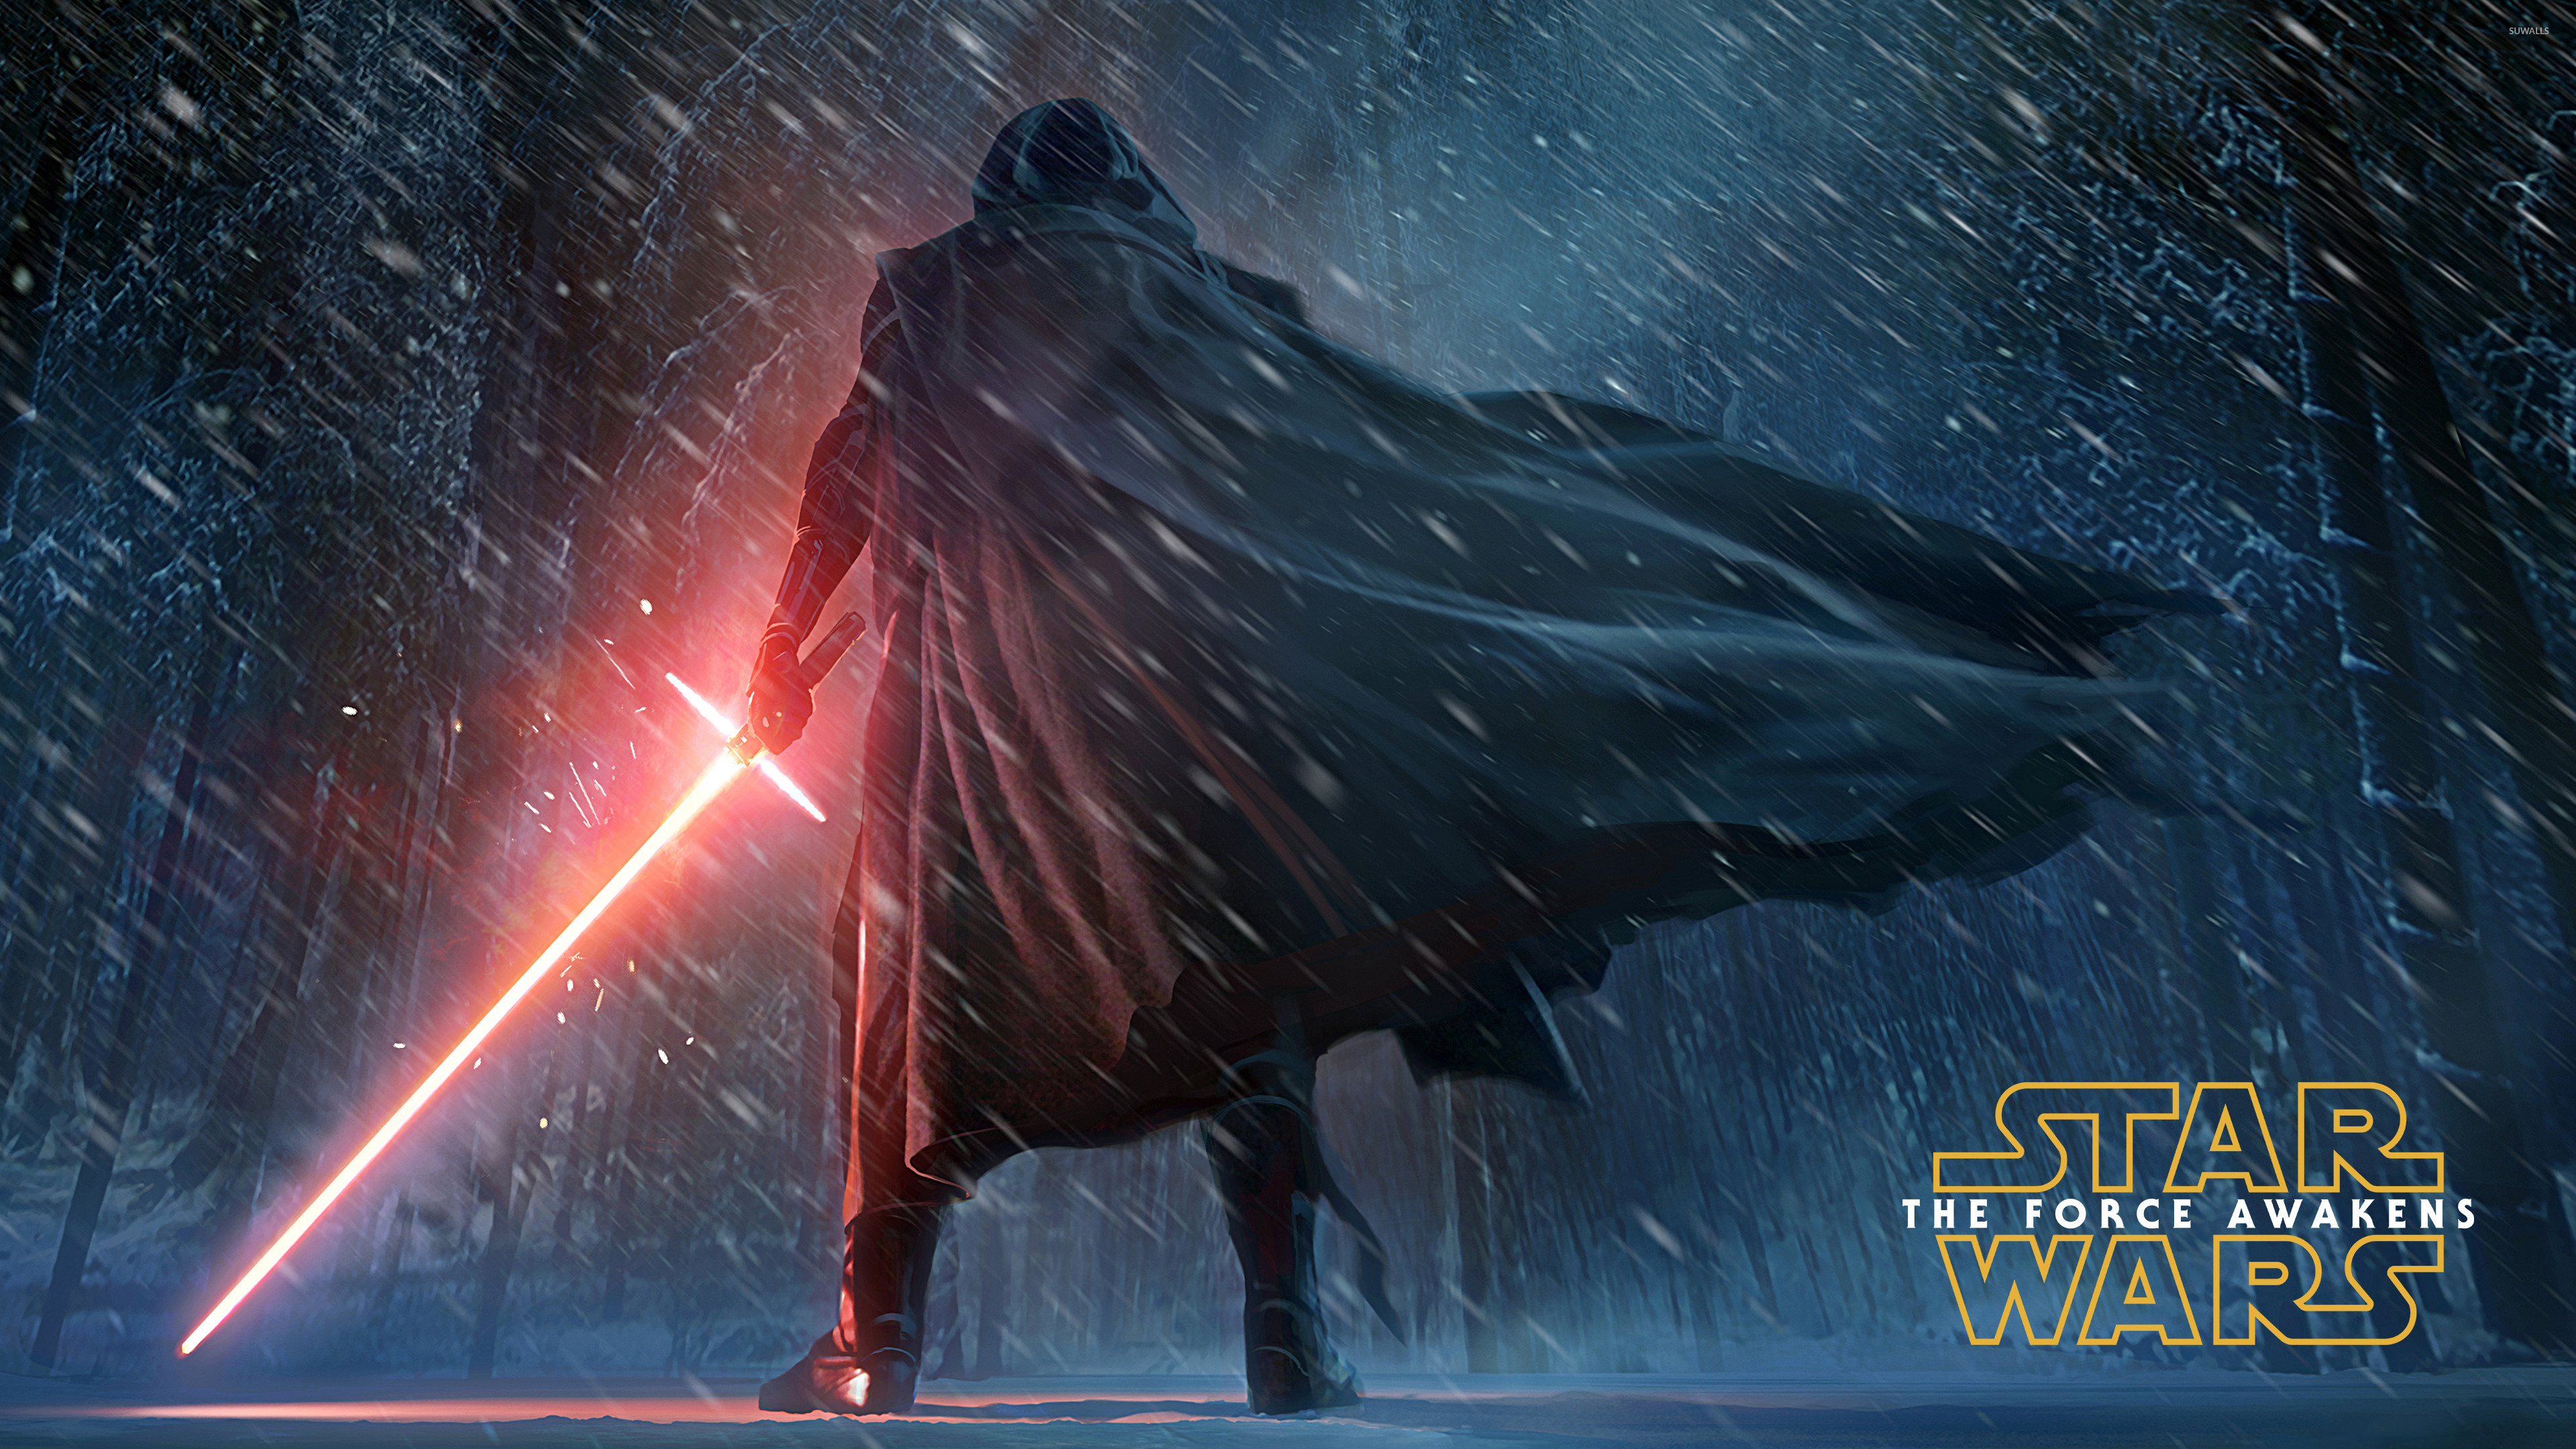 The Force Awakens Wallpaper 1920x1080 77 Images